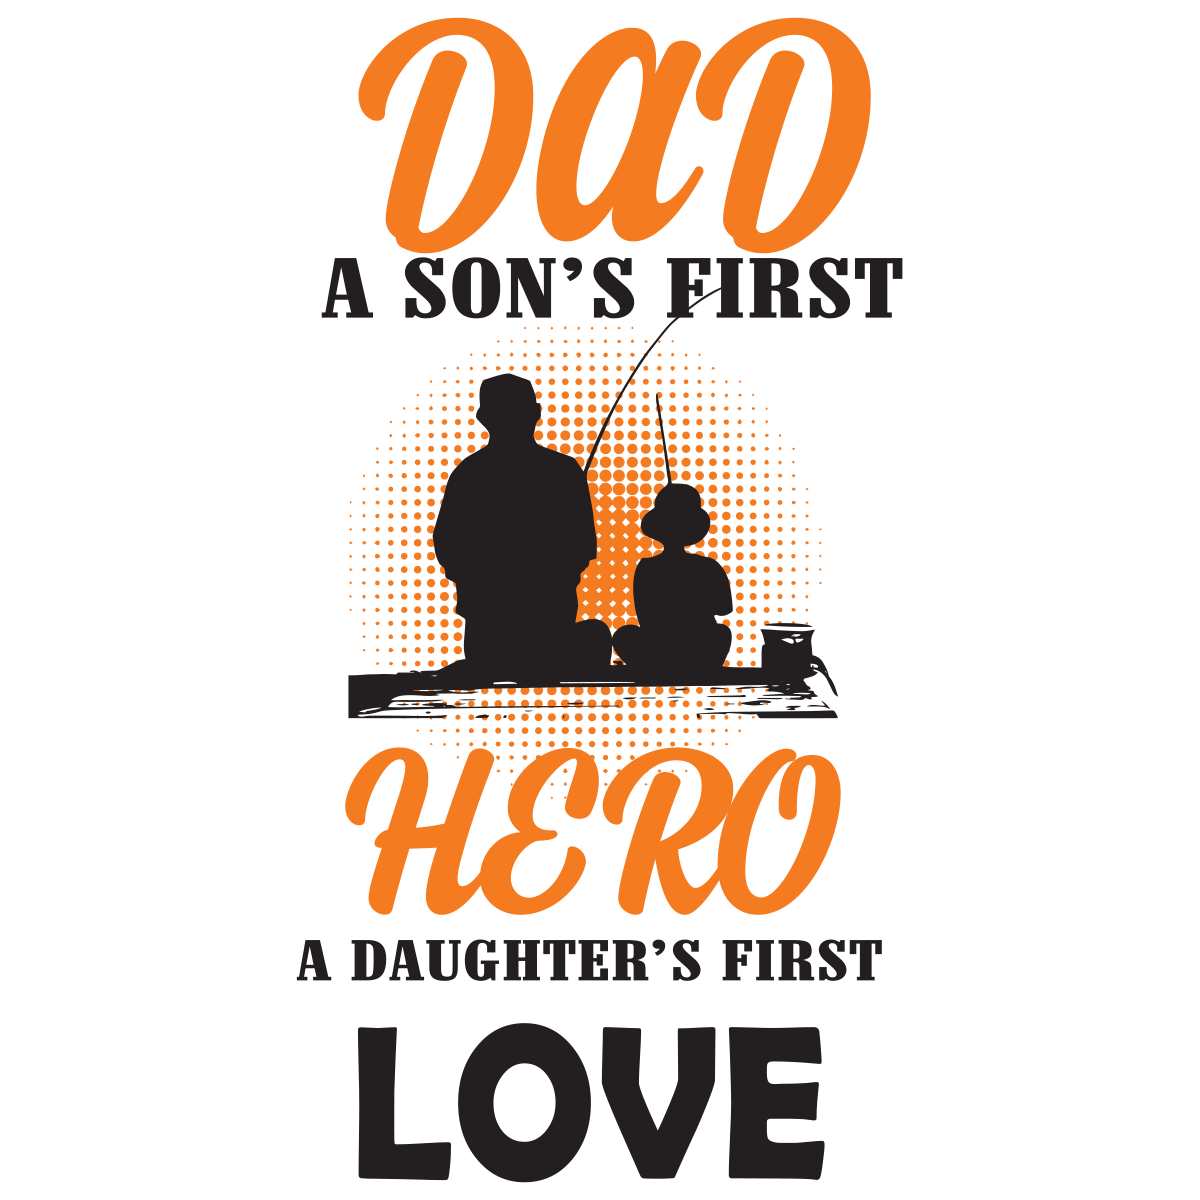 Download Dad A Sons First Hero A Daughters First Lover Svg Family Svg Dad Svg Svg Fabulous